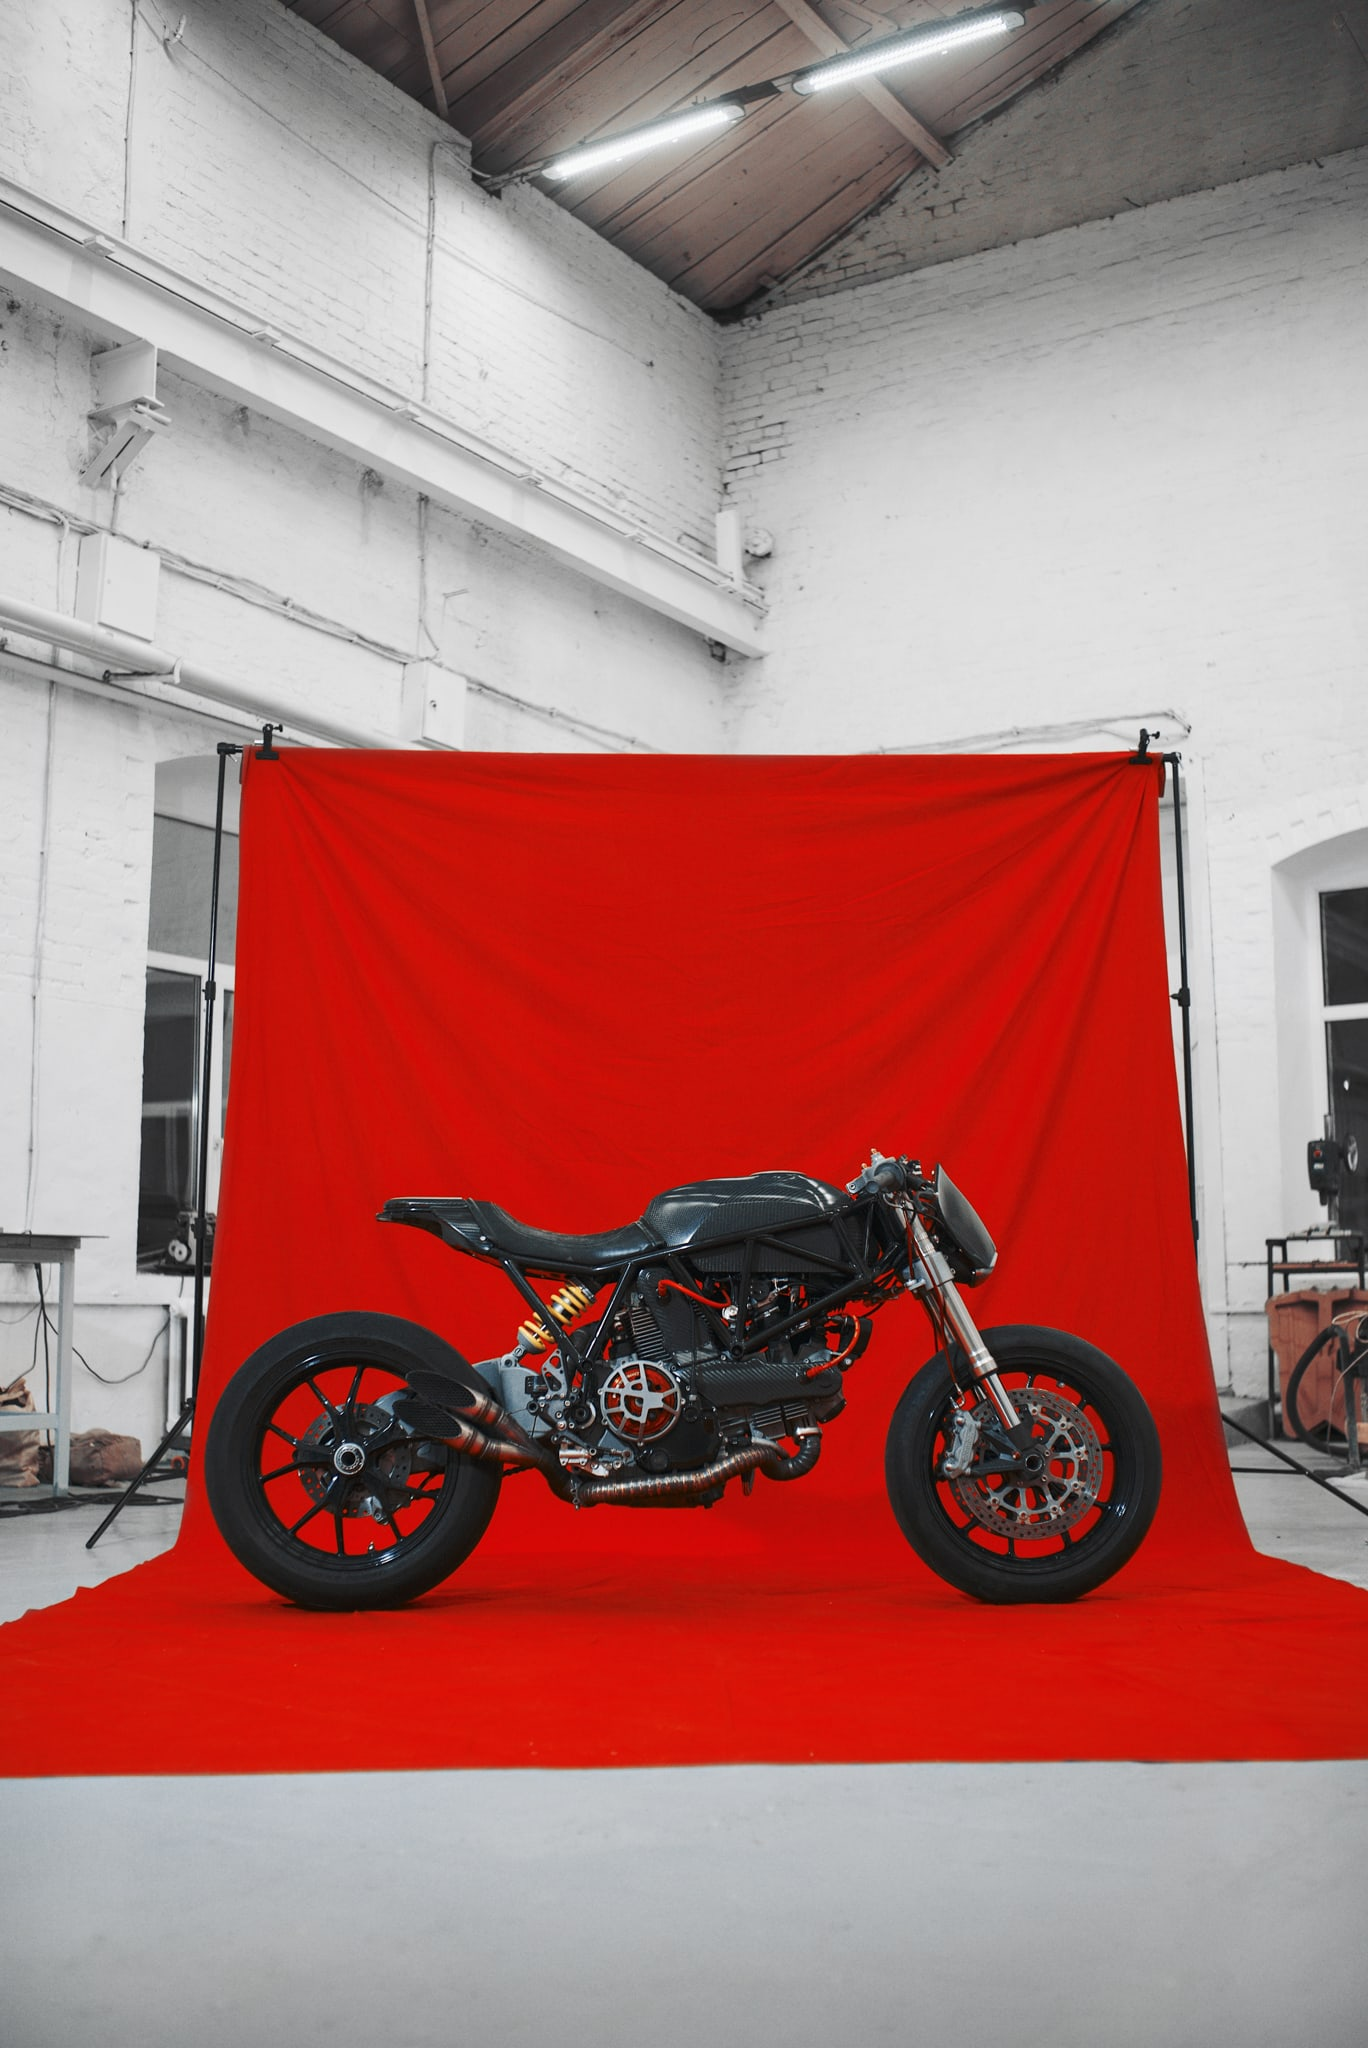 caferacer ducati birdie customs